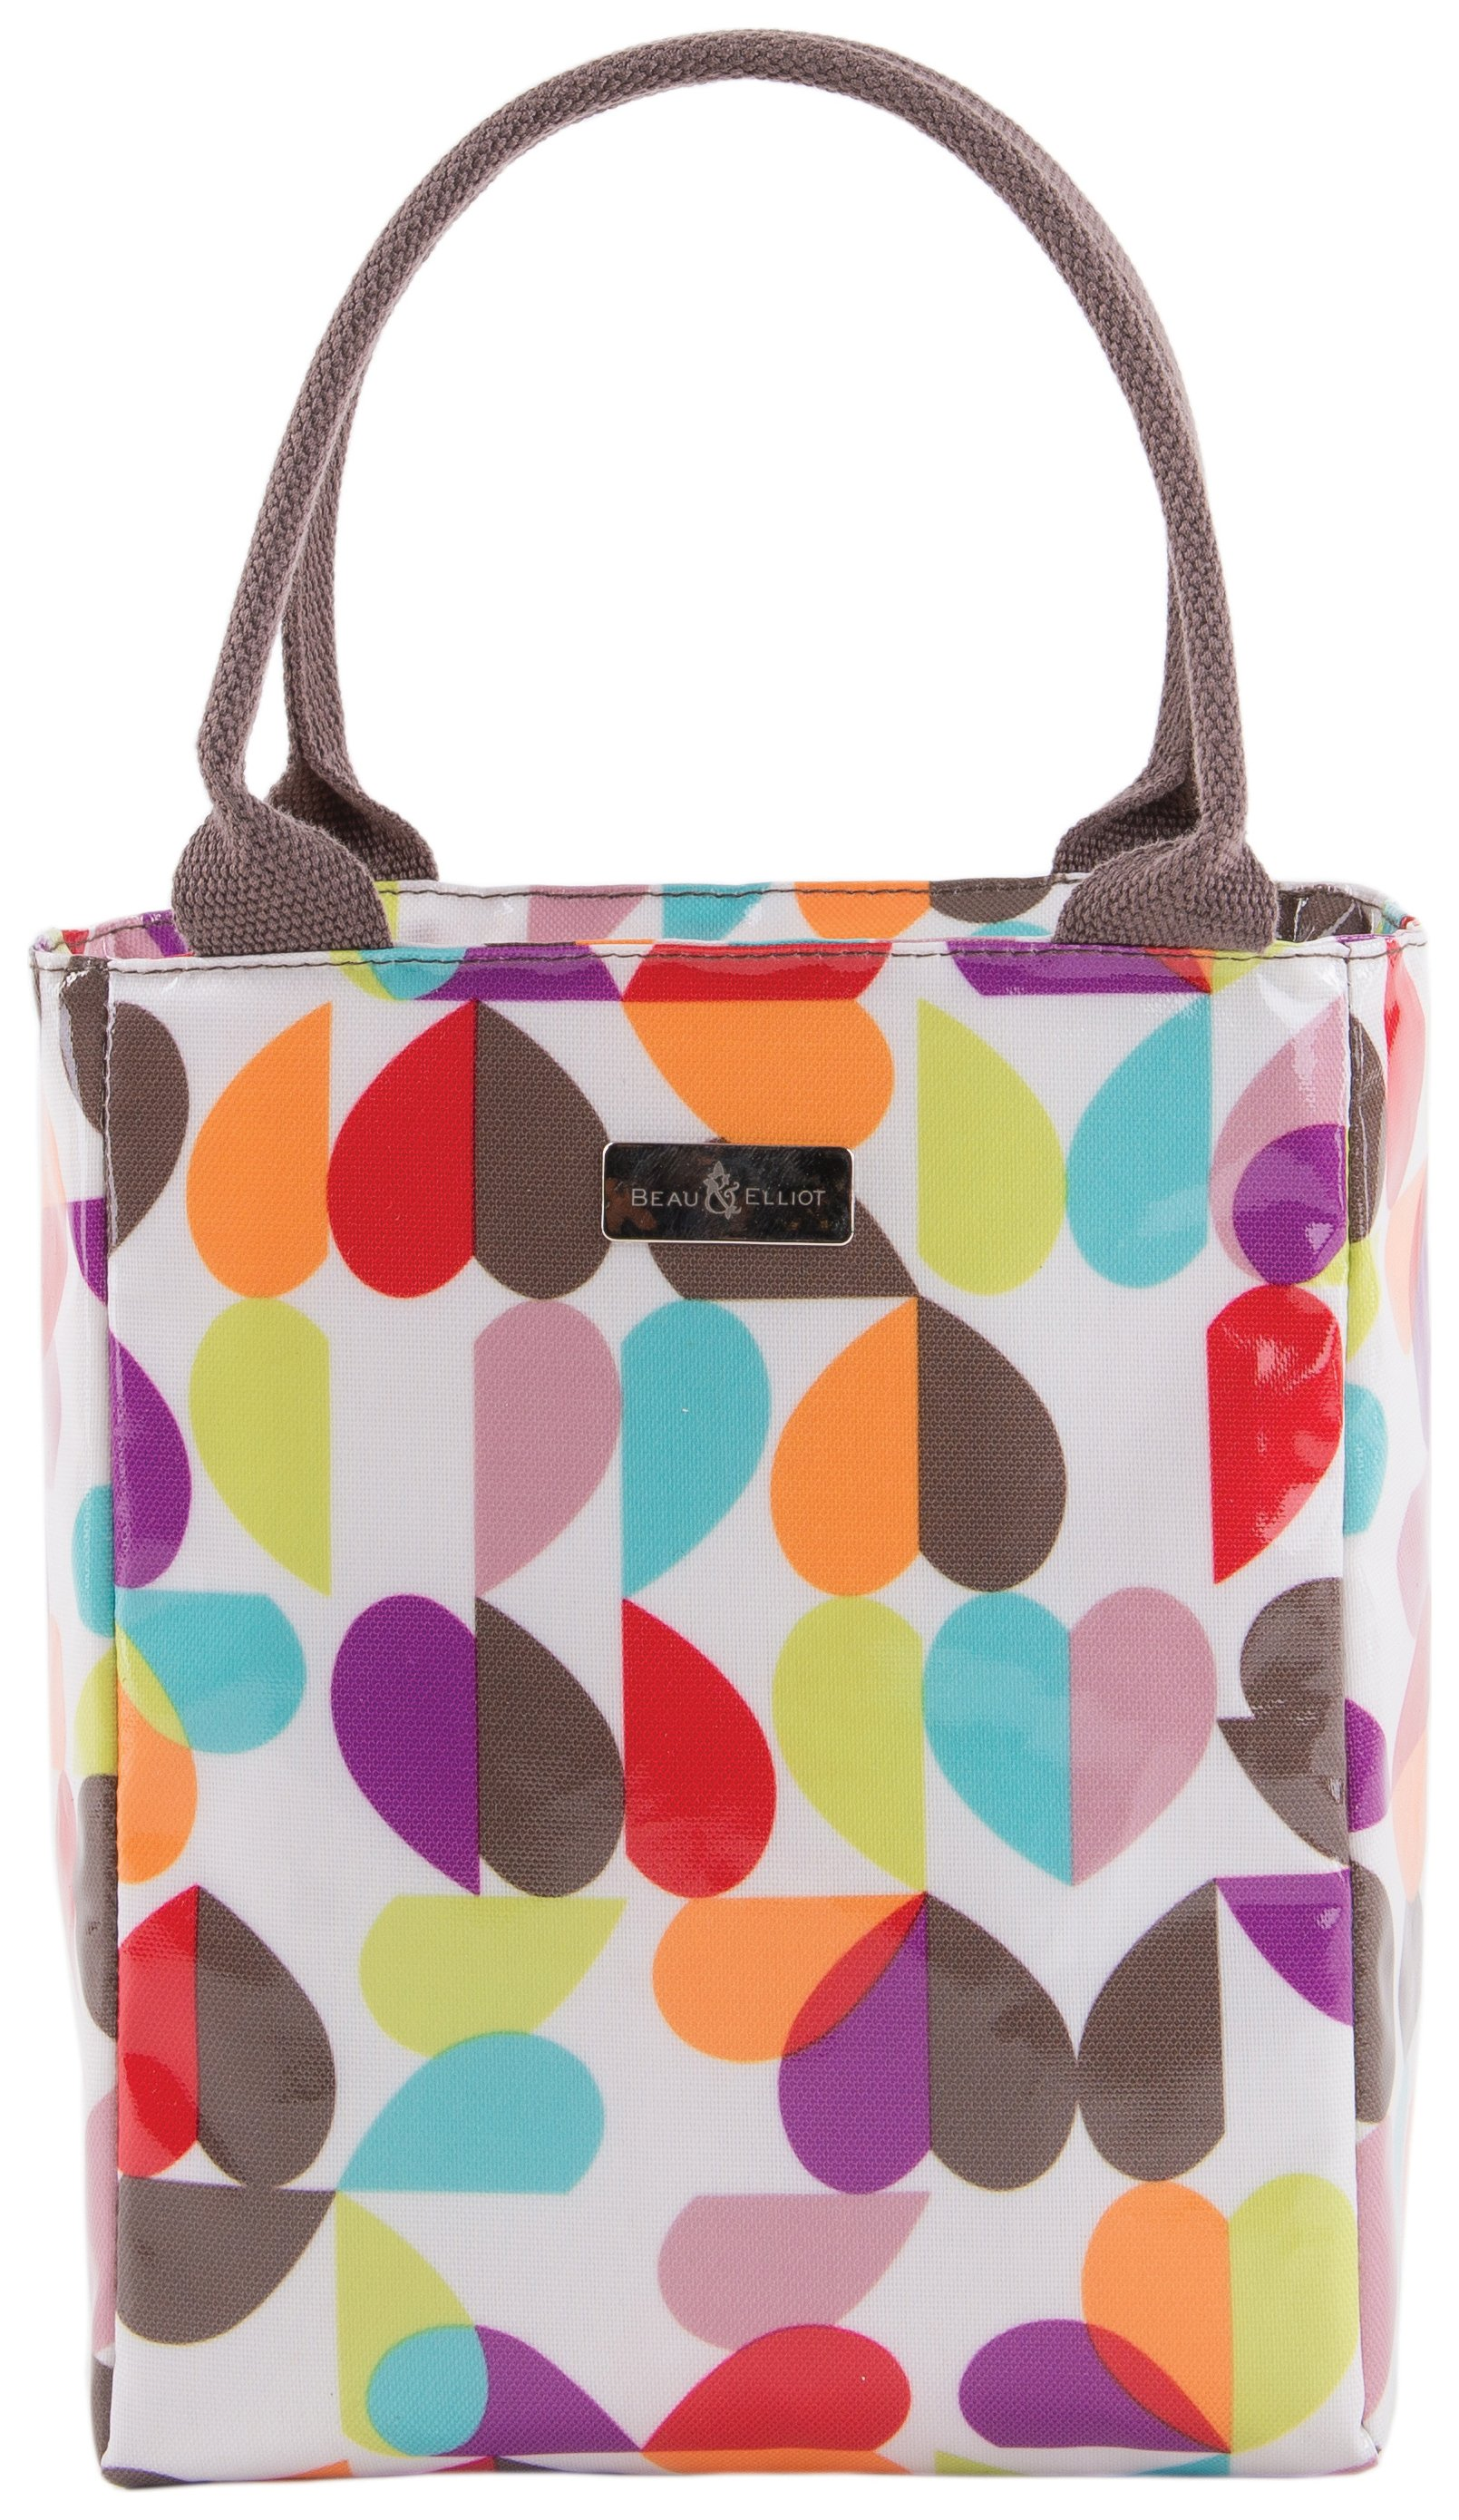 Image of Beau and Elliot - Brokenhearted Insulated Tote Lunchbag